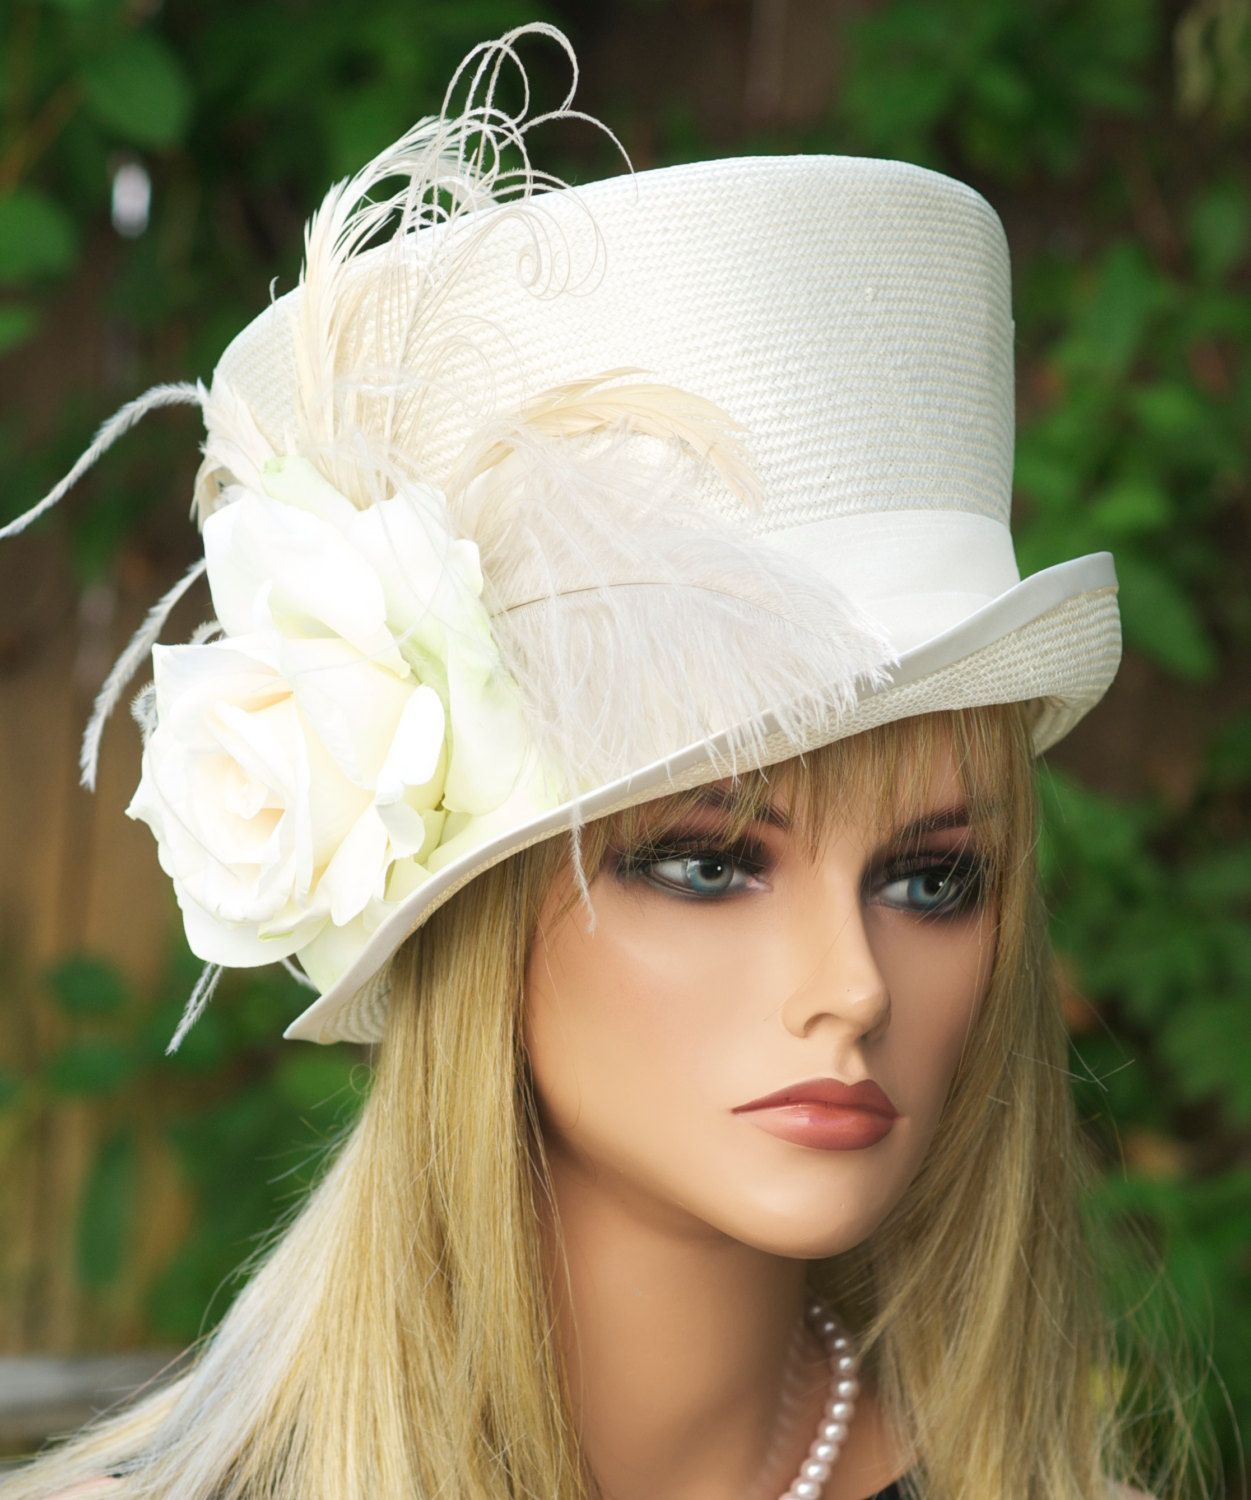 Hats derby for women forecast to wear for winter in 2019